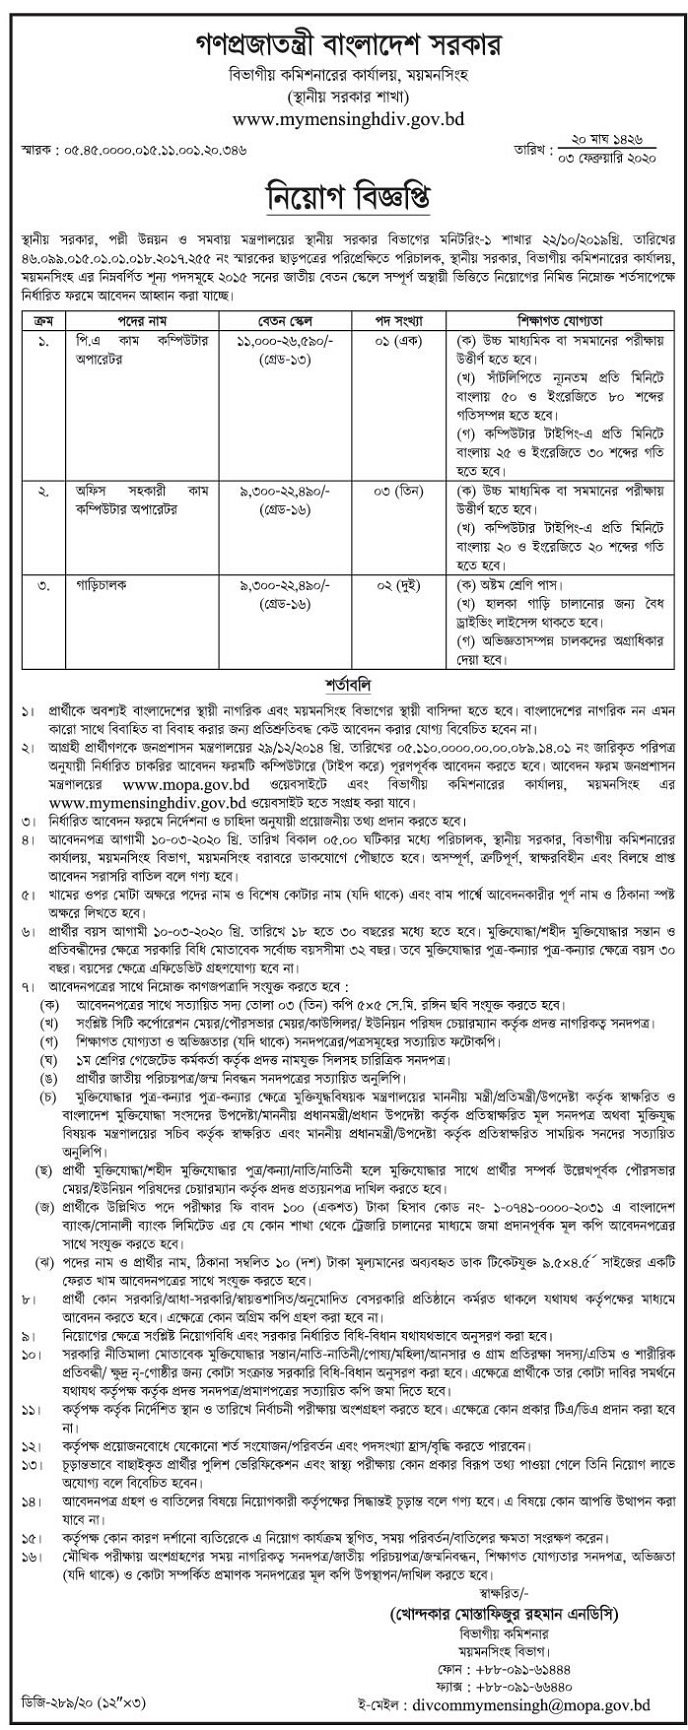 Divisional Commissioner's Office Job Circular 2020